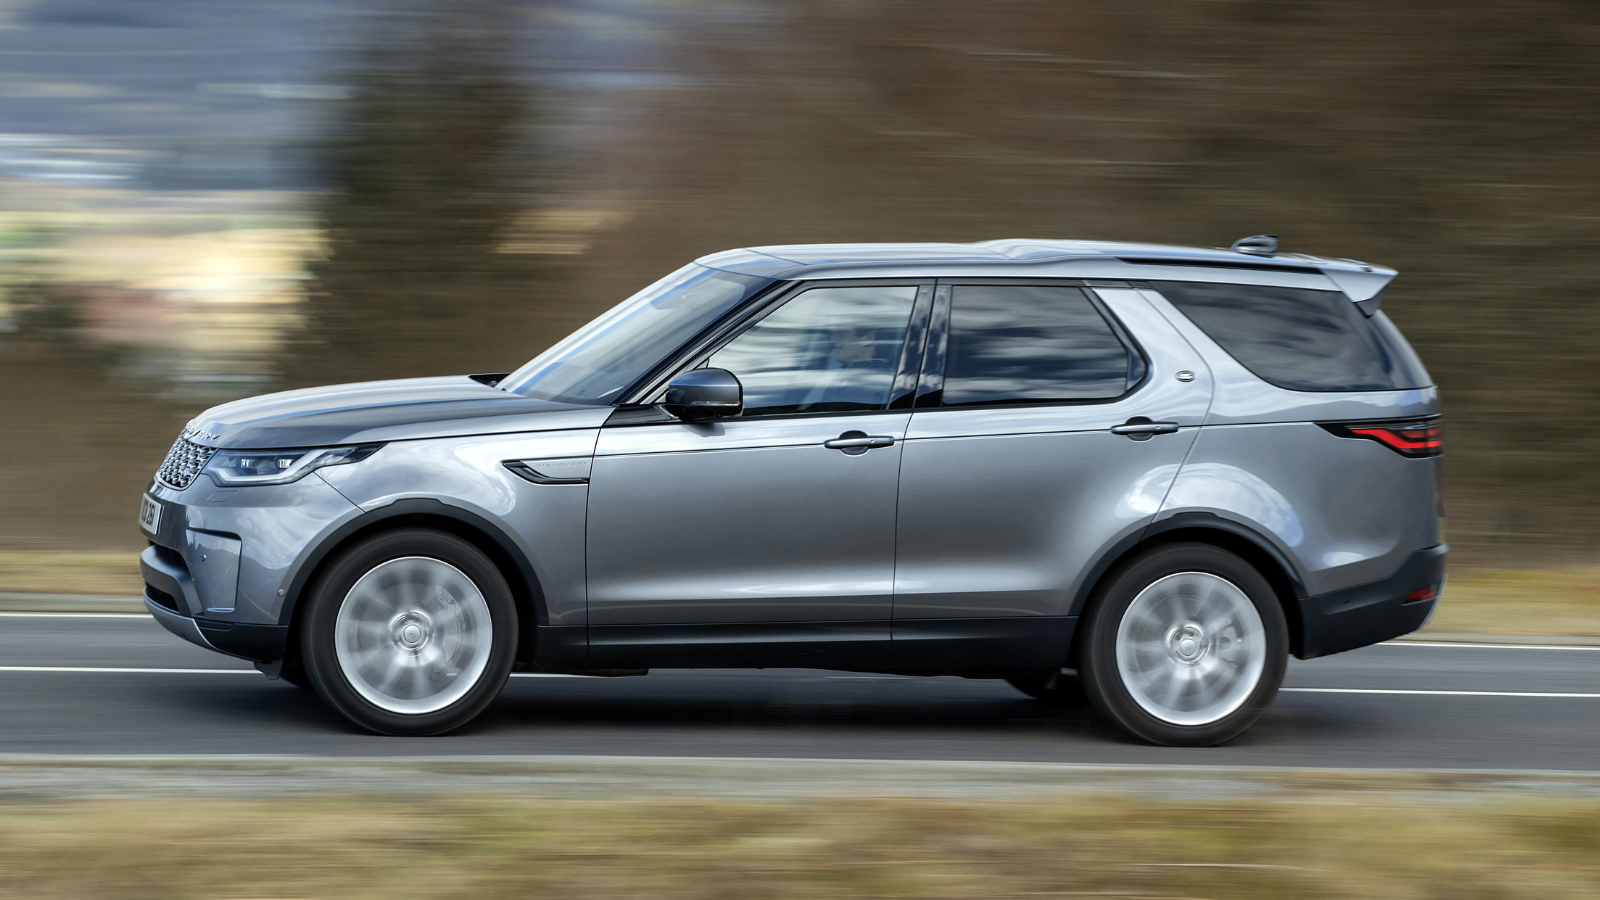 RANGE ROVER PETROL, DIESEL OR HYBRID - MAKE THE RIGHT CHOICE FOR YOU